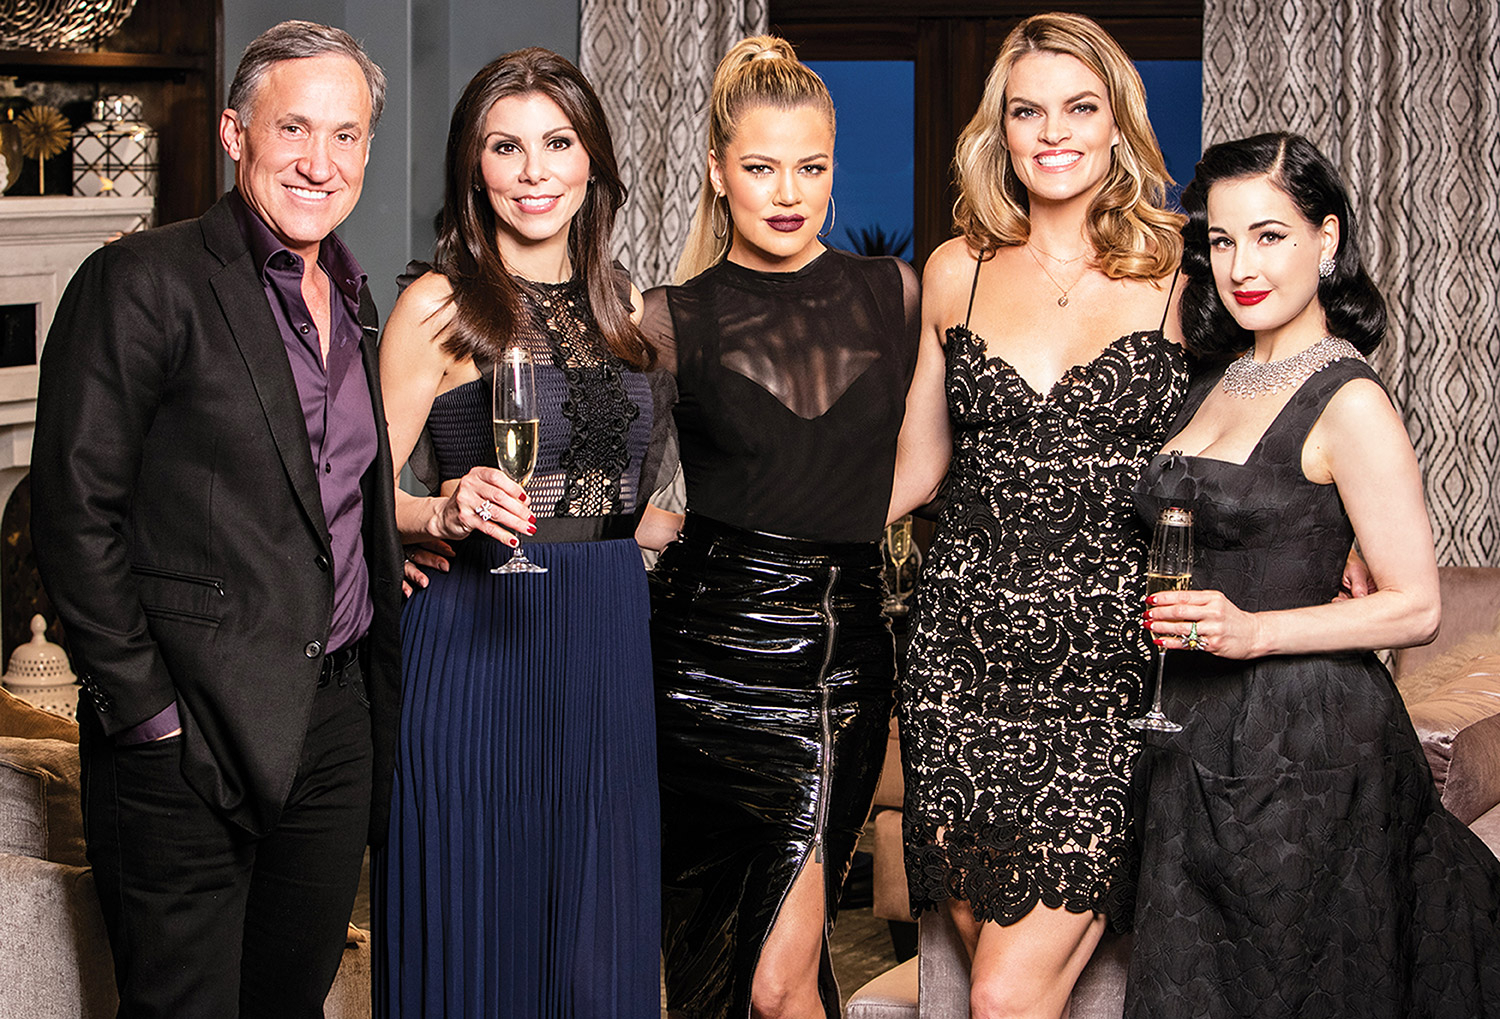 Terry Dubrow, Heather Dubrow, Khloé Kardashian, Missi Pyle and Dita Von Teese